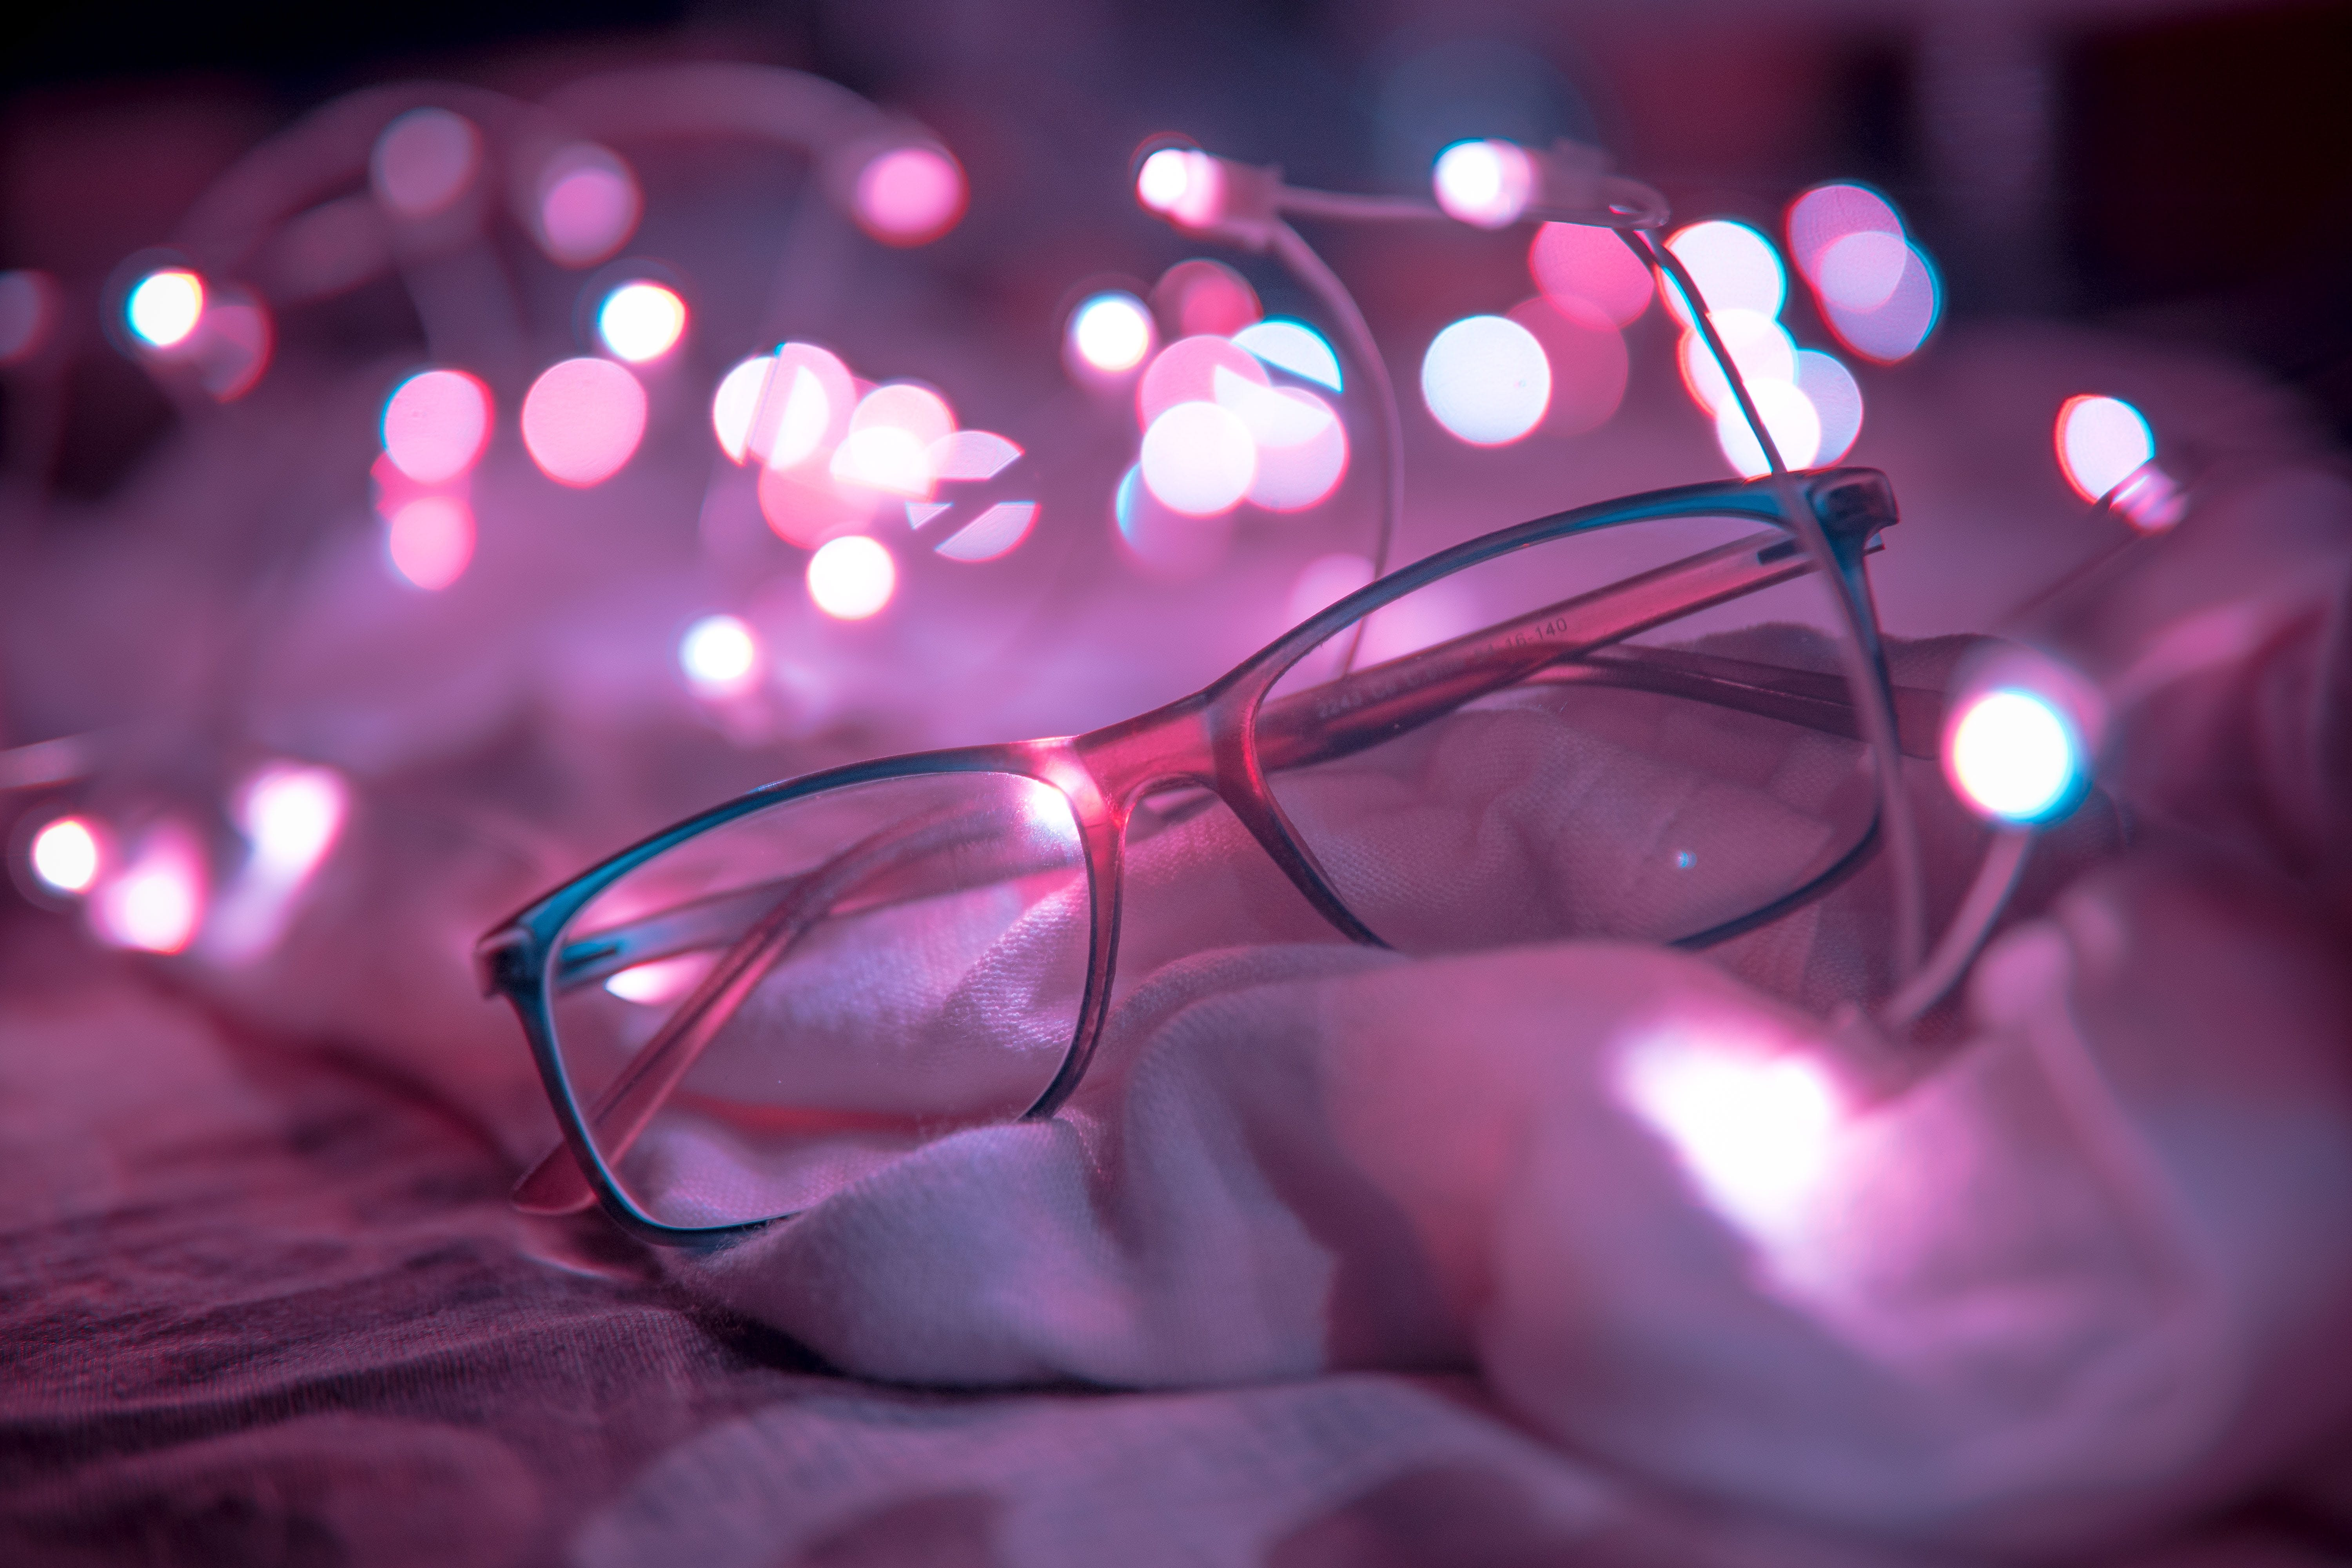 Shallow Focus Photography of Blue-framed Eyeglasses Near String Lights